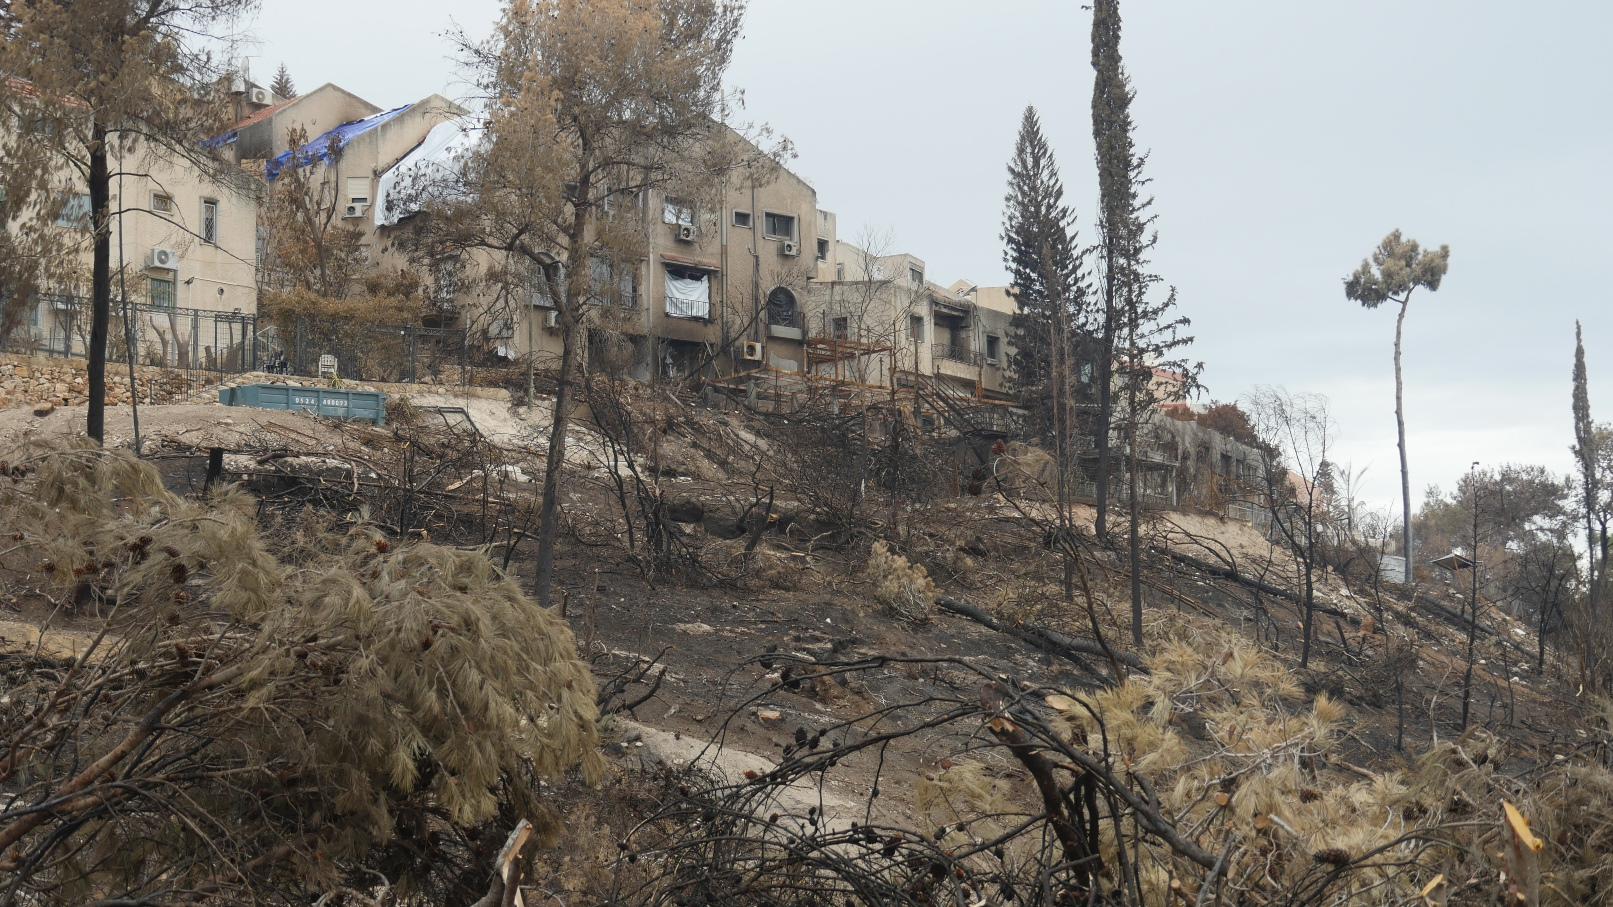 A view of scorched forest and homes in Haifa, November 2016. Photo courtesy of Haifa municipality